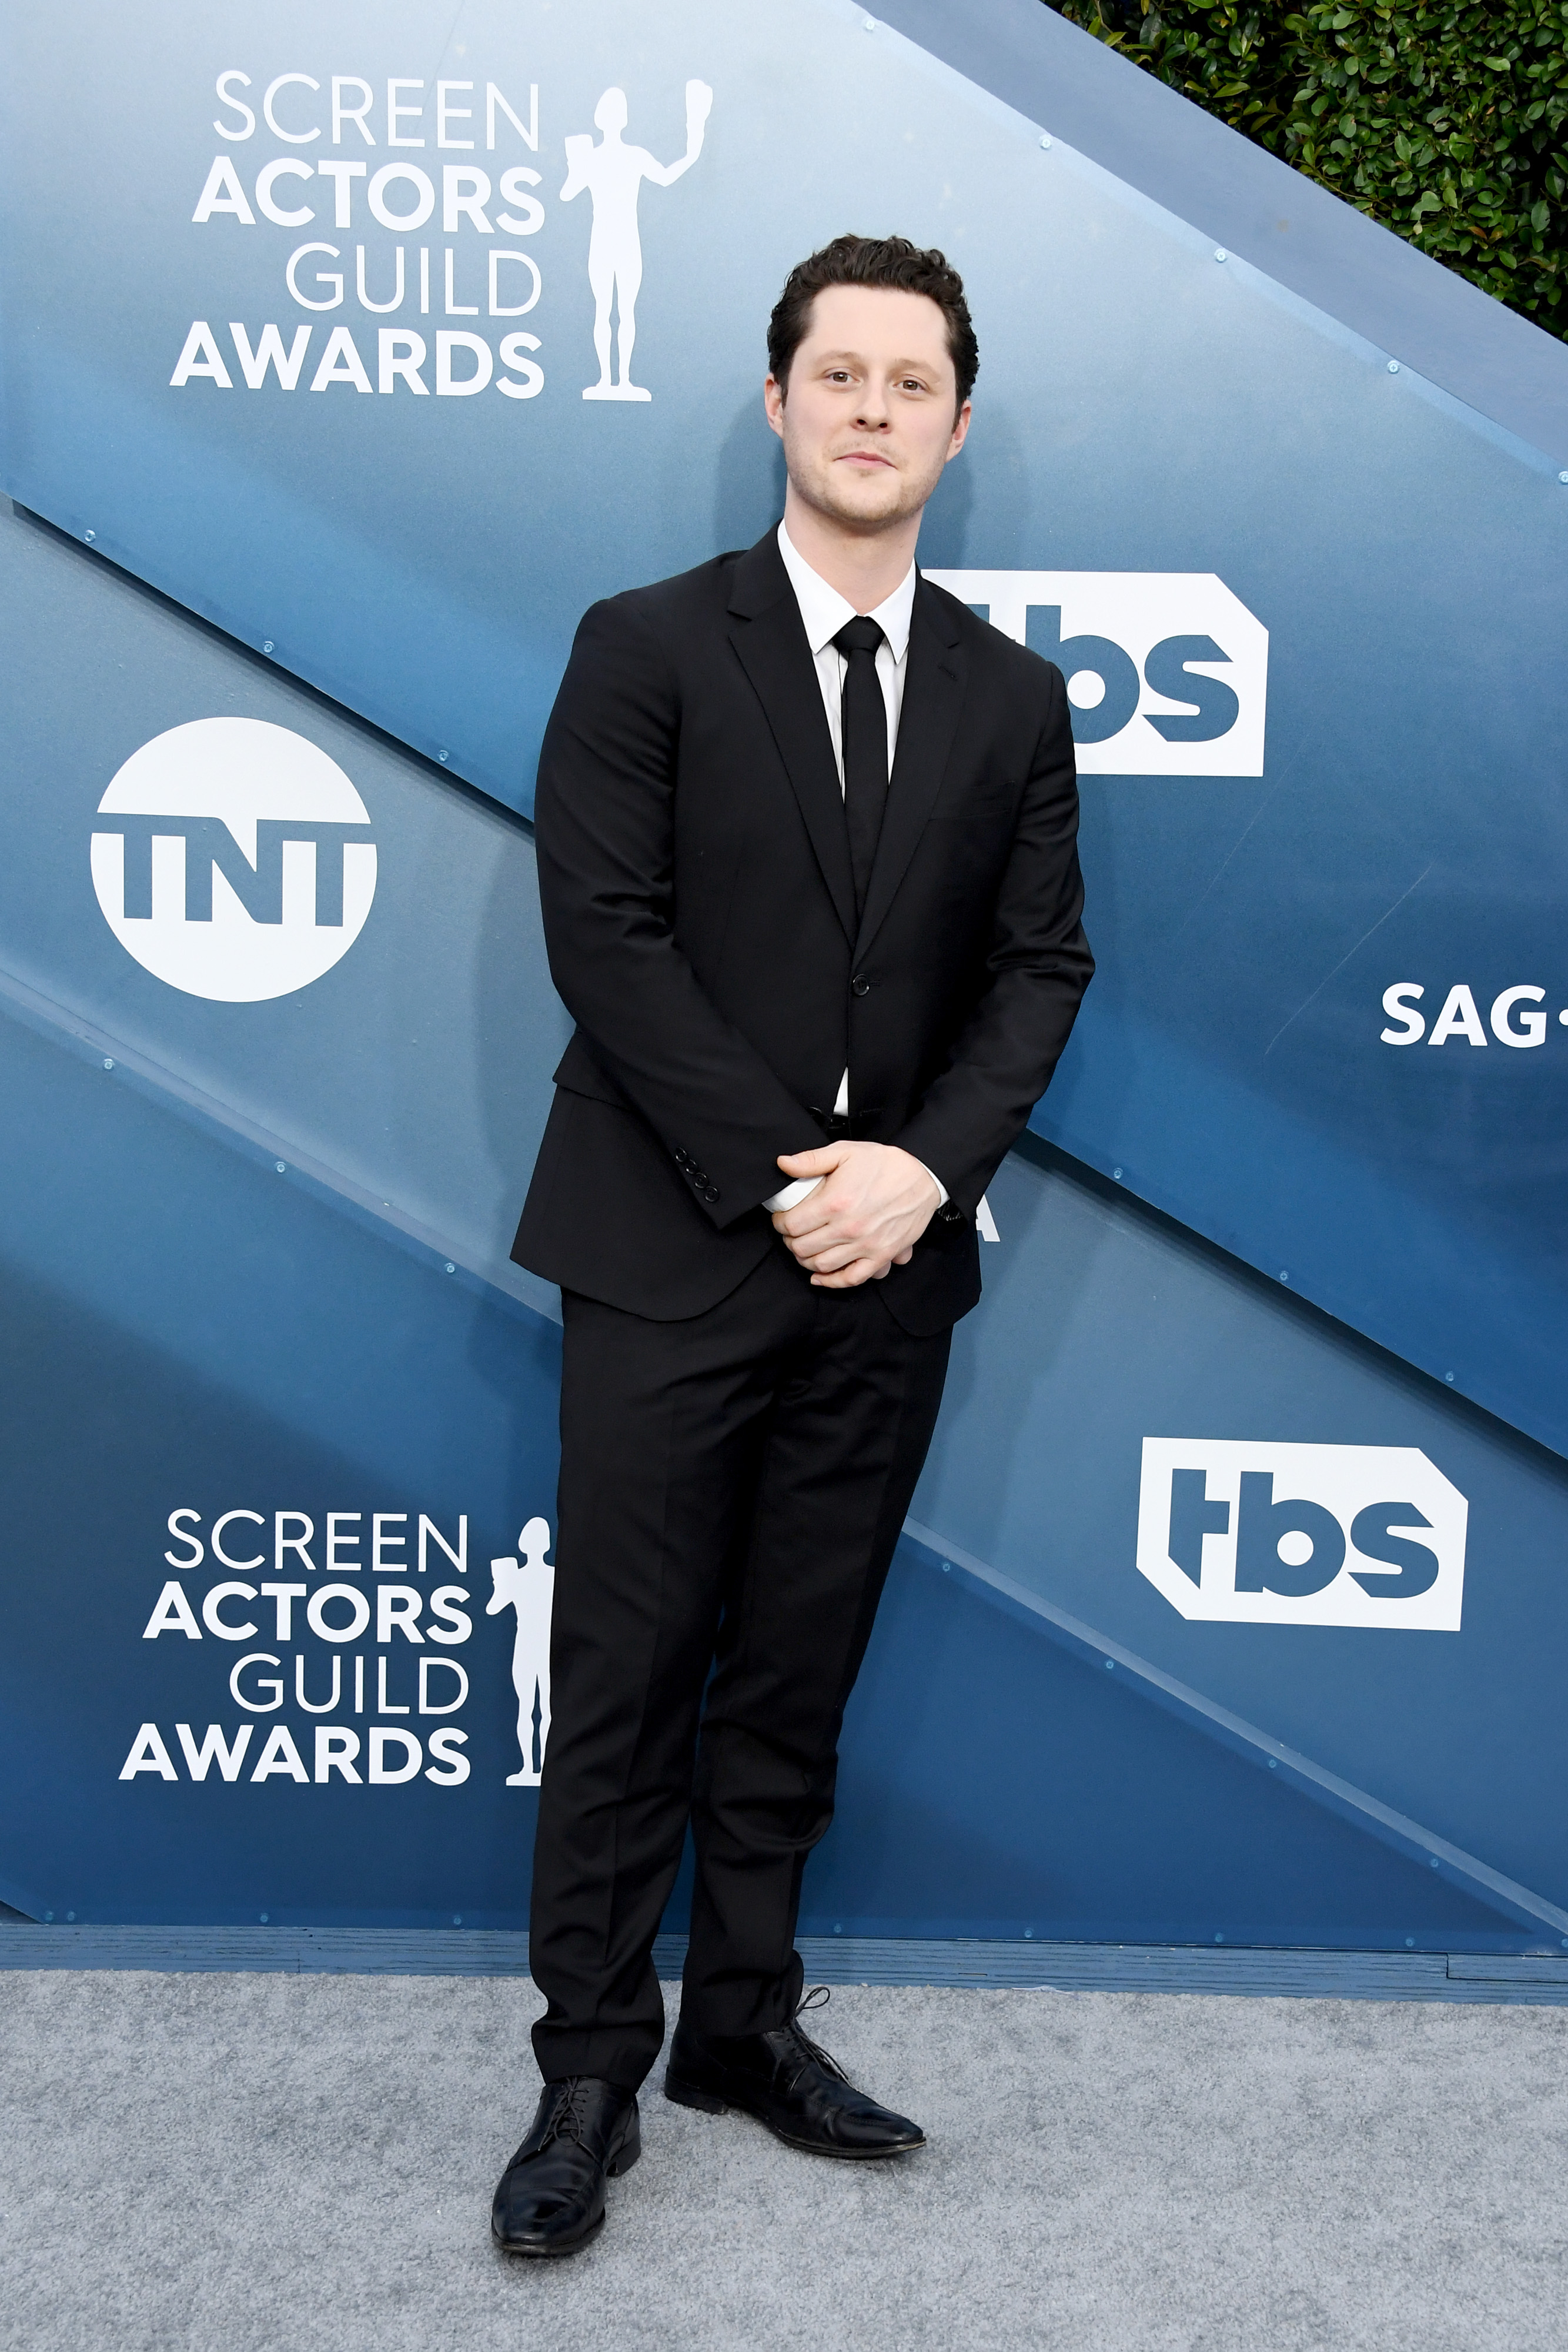 LOS ANGELES, CALIFORNIA - JANUARY 19: Noah Reid attends the 26th Annual Screen ActorsGuild Awards at The Shrine Auditorium on January 19, 2020 in Los Angeles, California. (Photo by Jon Kopaloff/Getty Images)